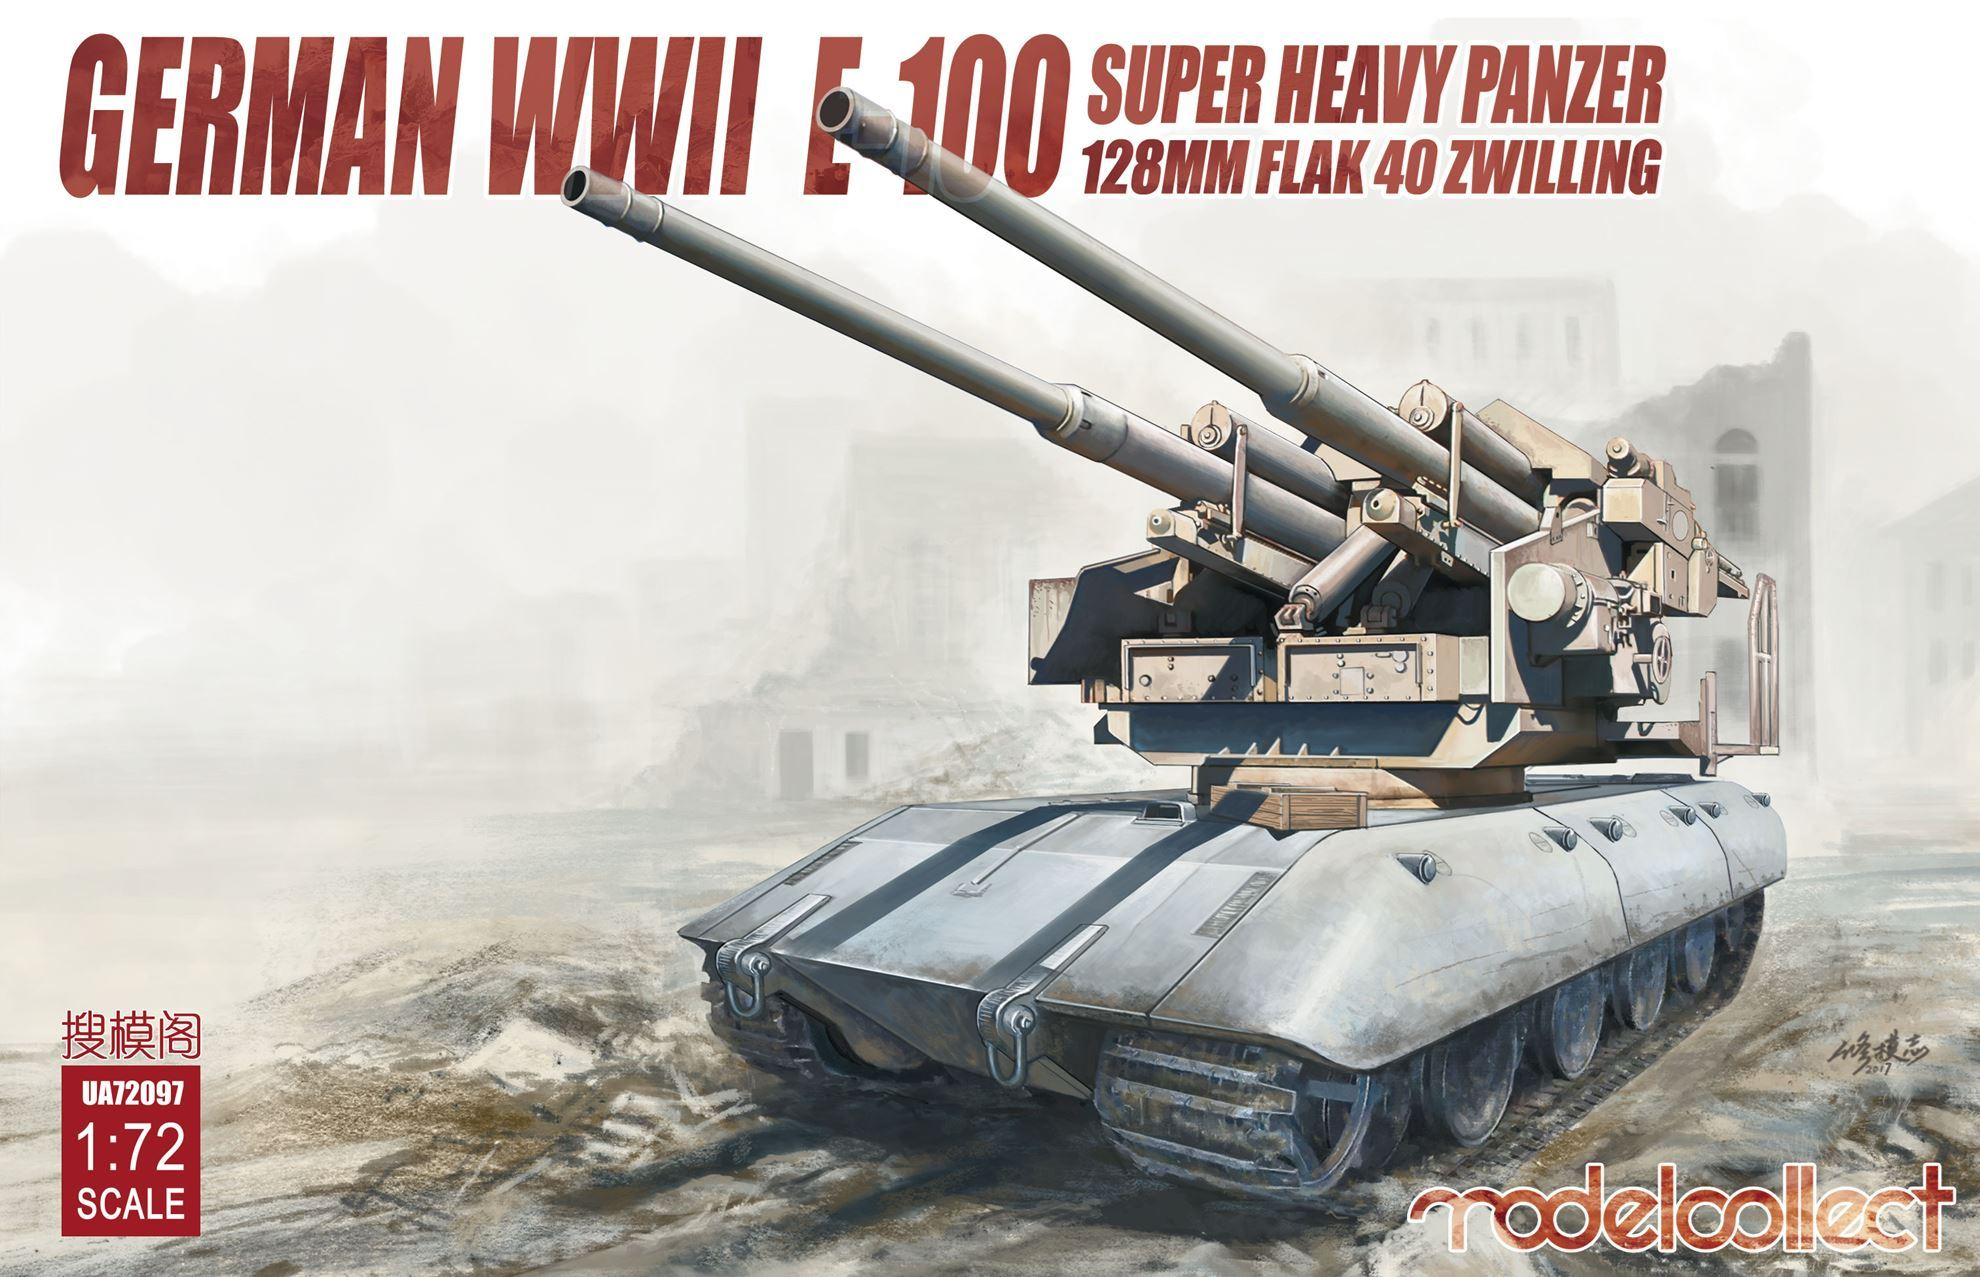 0002838_germany-wwii-e-100-super-heavy-p